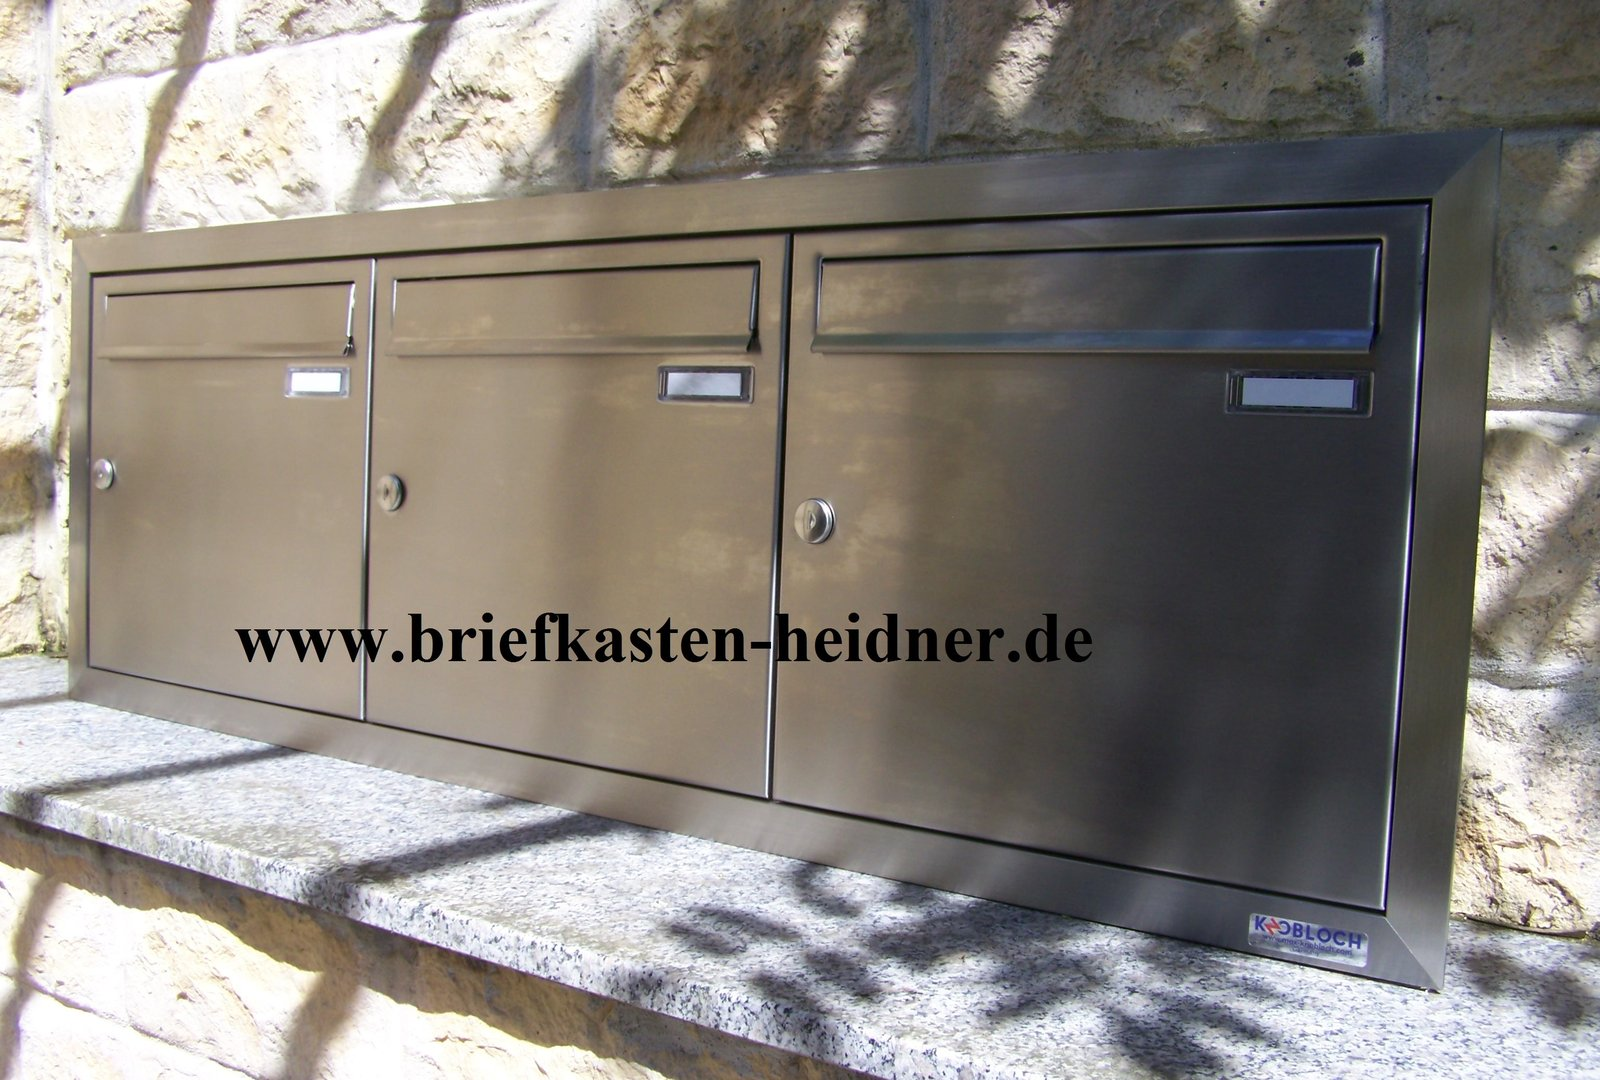 uph101 va knobloch unterputz briefkastenanlage 3 teilig edelstahl nebeneinander www. Black Bedroom Furniture Sets. Home Design Ideas